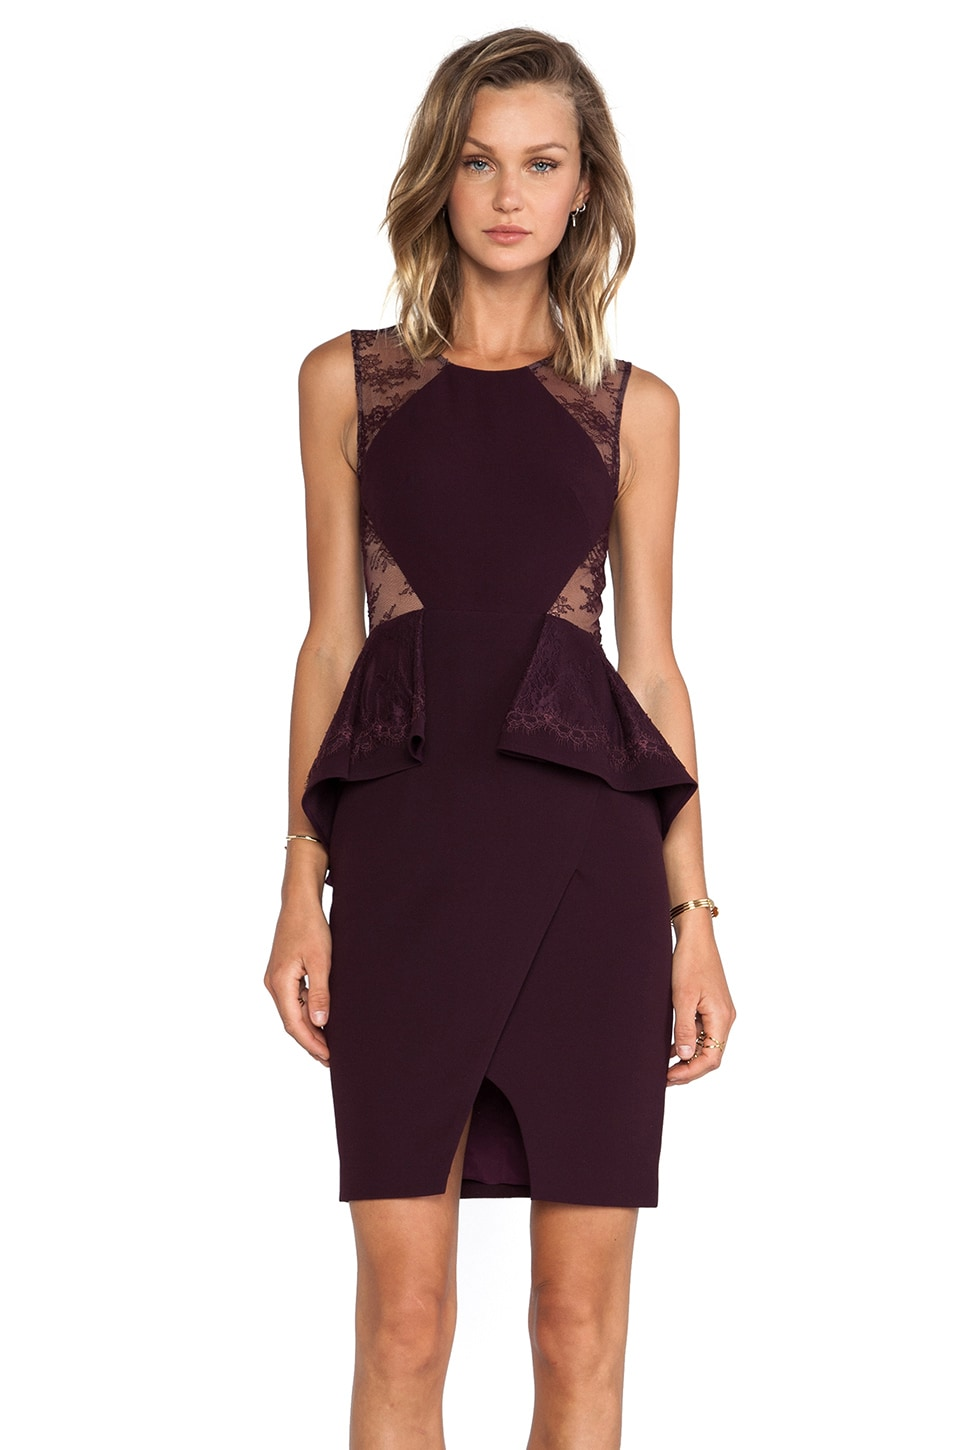 BCBGMAXAZRIA Whitley Sleeveless Peplum Dress in Deep Port